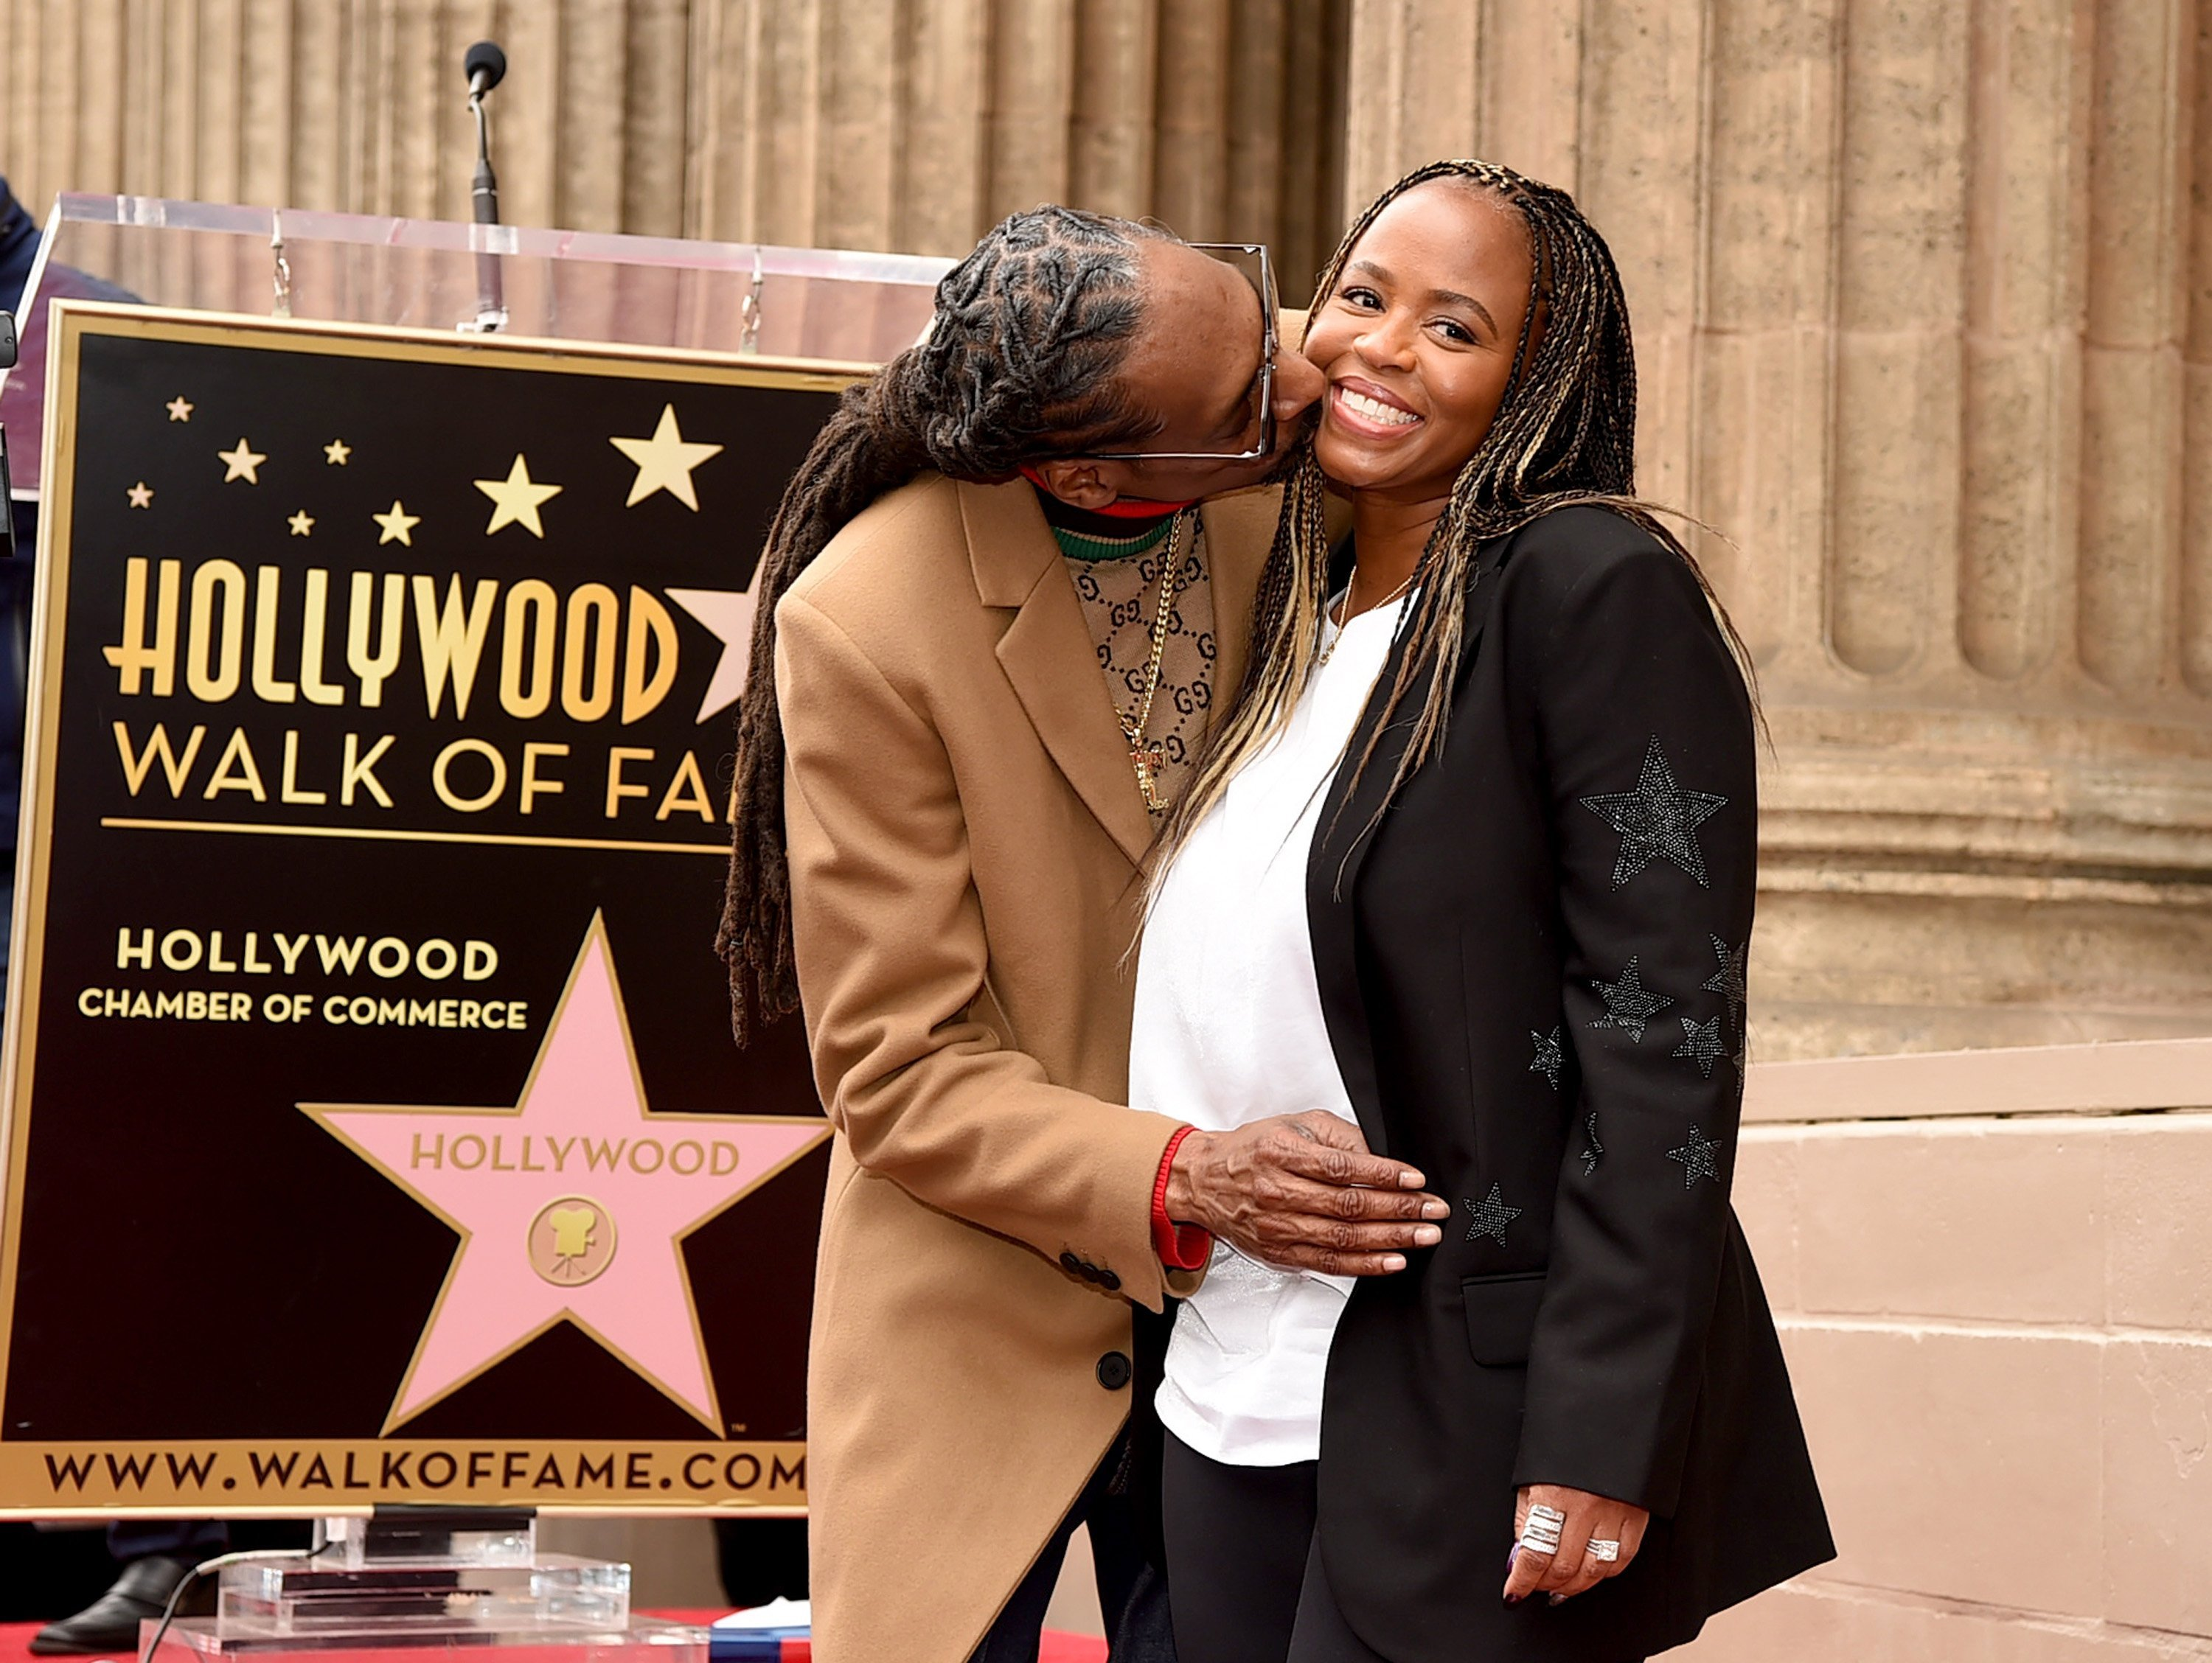 Snoop Dogg, with his wife Shante Broadus, is honored with a star on The Hollywood Walk Of Fame on Nov. 19, 2018 in California | Photo: Getty Images